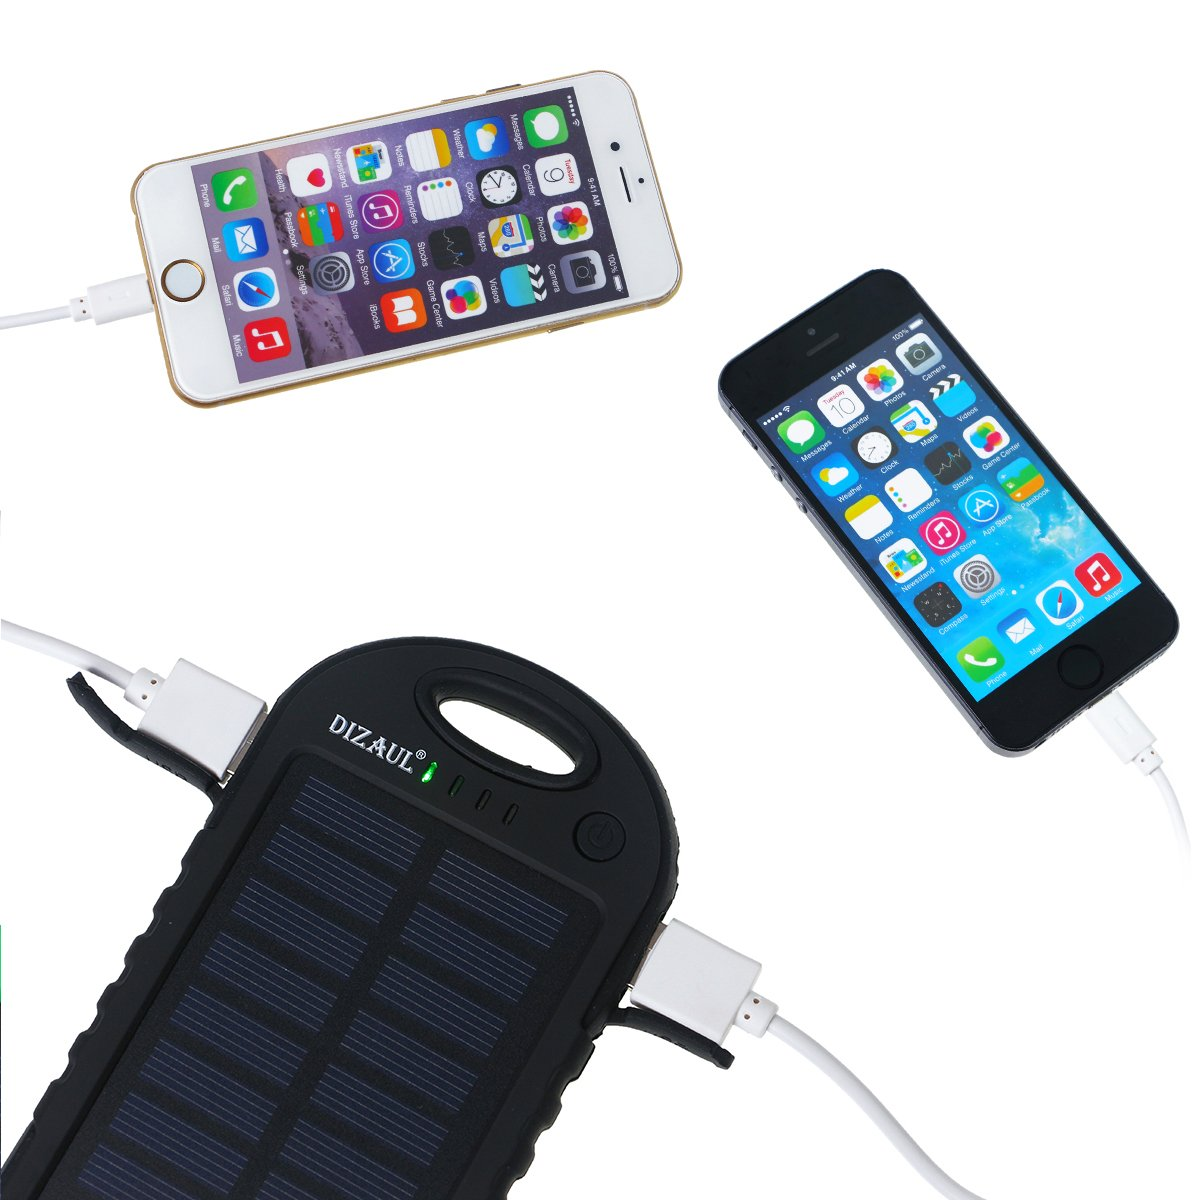 Solar Charger, Dizaul 5000mAh Portable Solar Power Bank Waterproof/Shockproof/Dustproof Dual USB Battery Bank for Cell Phone, Samsung, Android Phones, Windows Phones, GoPro Camera, GPS and More by dizauL (Image #5)